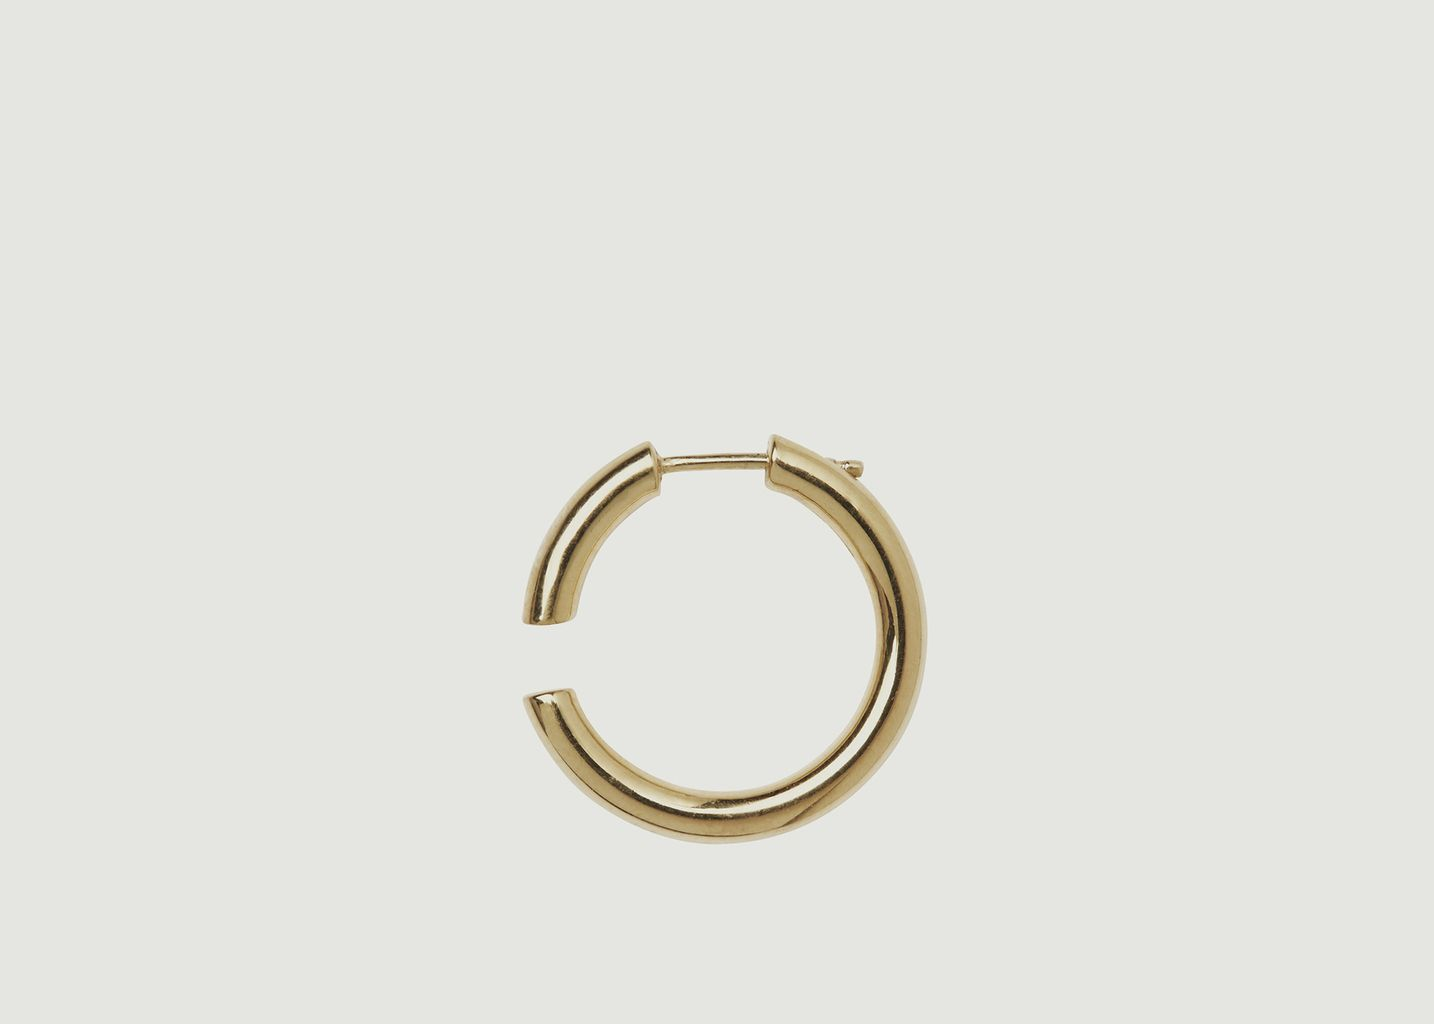 Boucle d'Oreille Disrupted 22 - Maria Black